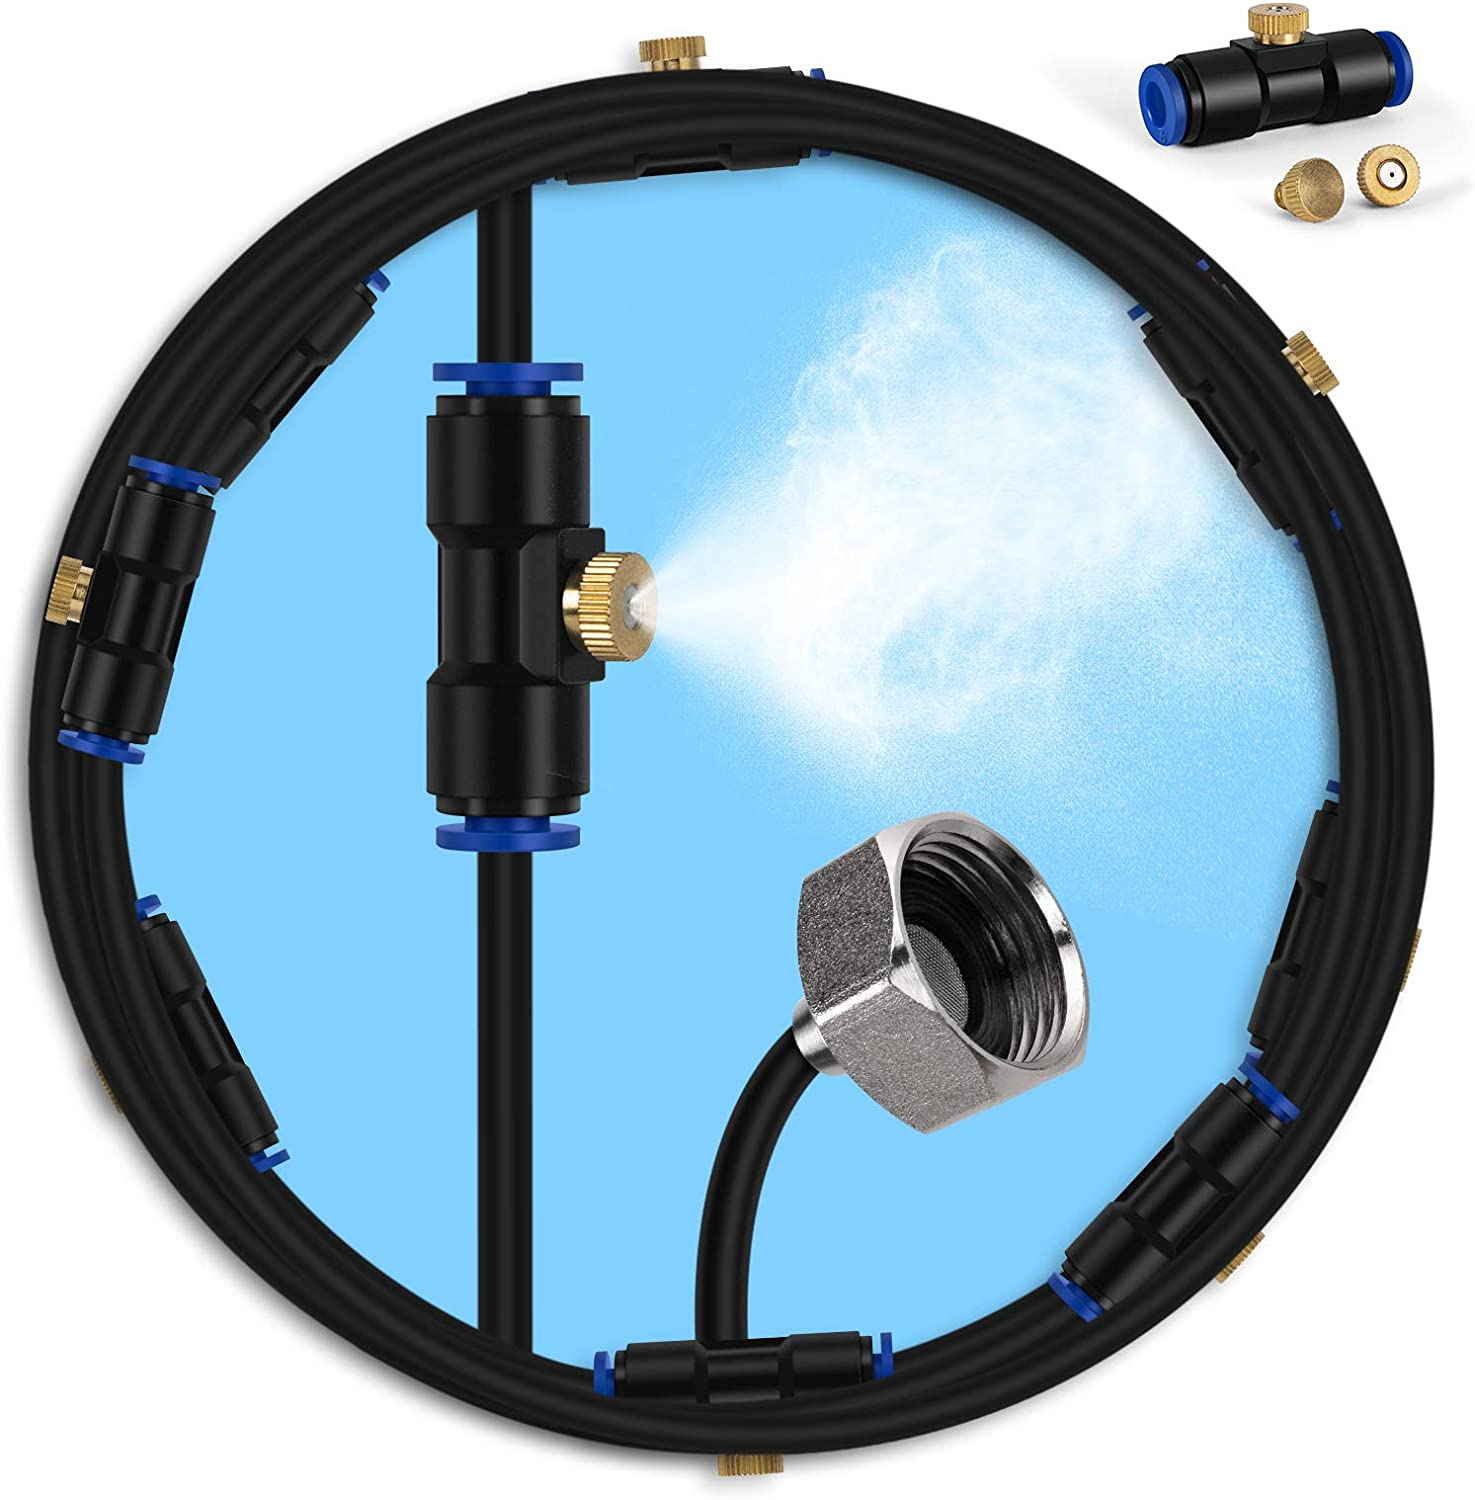 lifeegrn Misting Cooling System, Outdoor Misting System for Patio, 40 FT Misting Line+10 Mist Nozzles+3/4